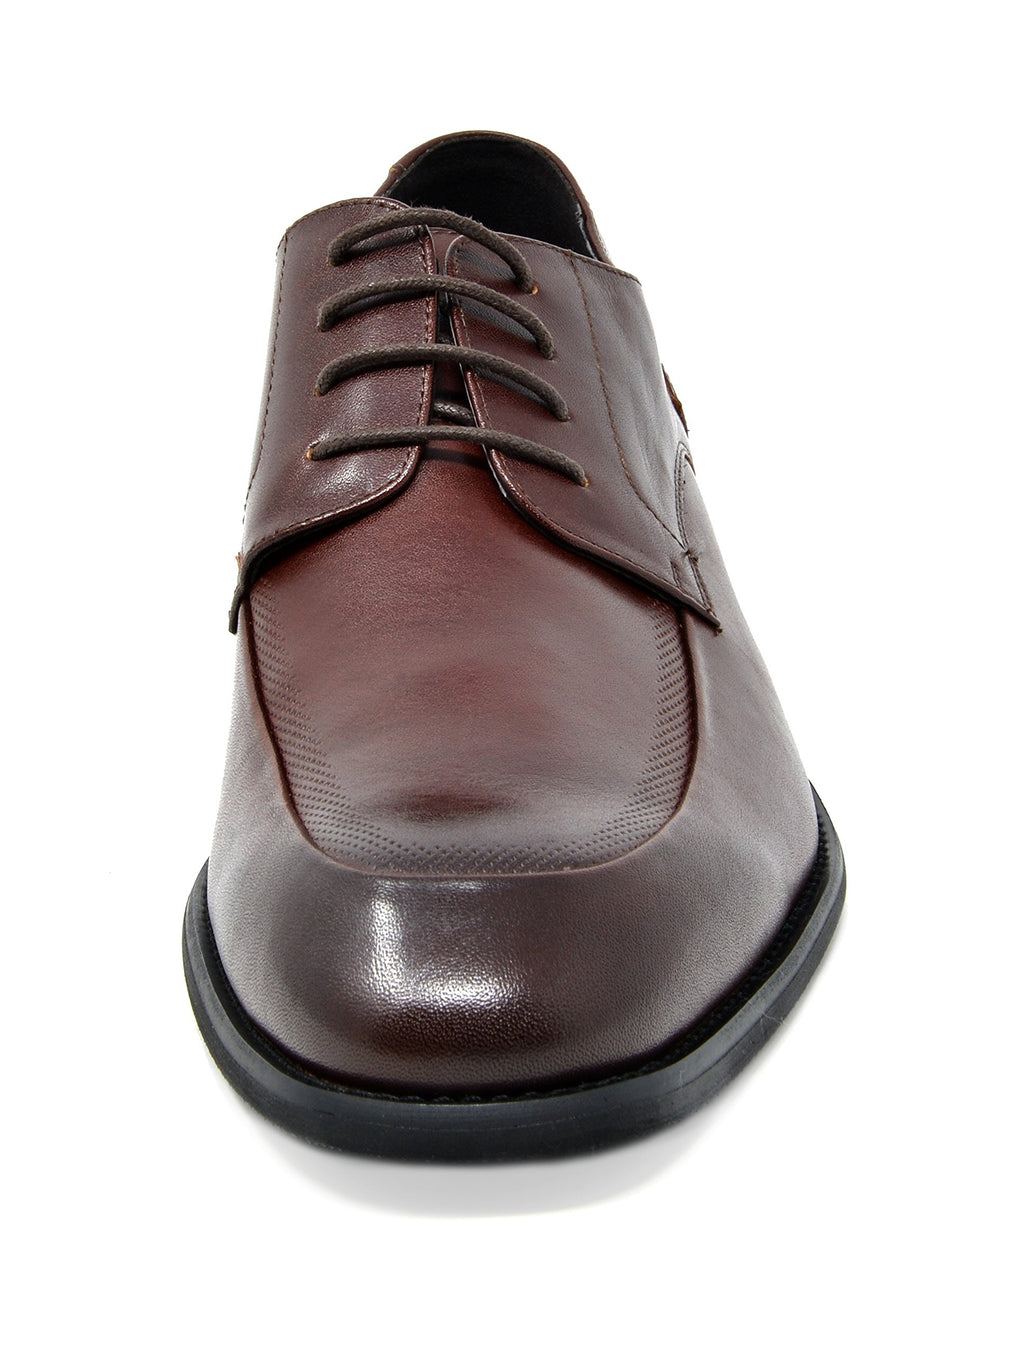 Men's Dress Shoes Classic Oxfords Washington-Dark Brown 3